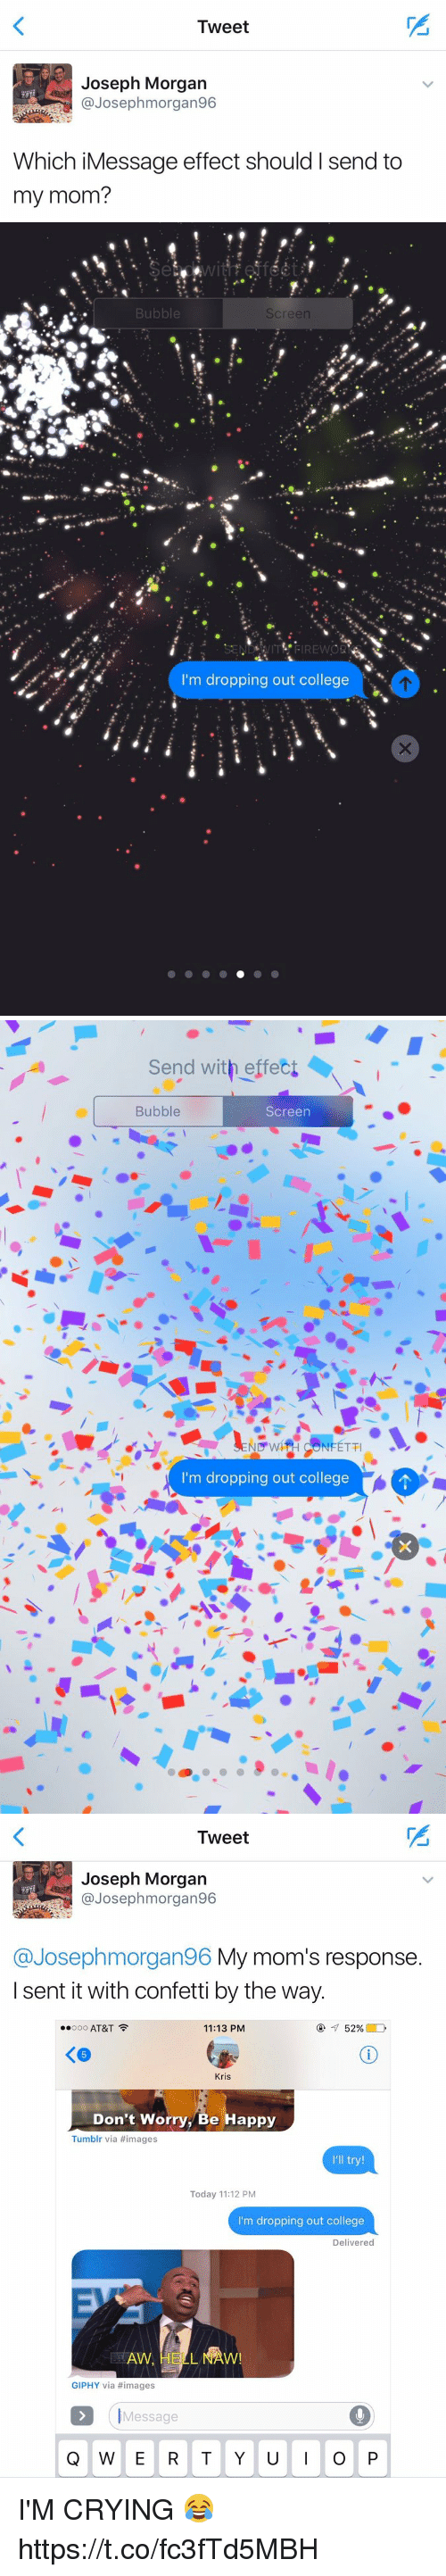 Giphy: Tweet  Joseph Morgan  @Joseph morgan96  Which iMessage effect should I send to  my mom?   Bubble  Screen  m dropping out college   Send with effect  Bubble  Screen  ND WH NFETTI  I'm dropping out college   Tweet  Joseph Morgan  Josep hmorgan96  @Joseph morgan96 My mom's response  I sent it with confetti by the way.  Ooo AT&T  52%  11:13 PM  Kris  Don't Worry, Be Happy  Tumblr via #images  I'll try!  Today 11:12 PM  I'm dropping out college  Delivered  GIPHY via images  Message  Q W E R T Y U  I O P I'M CRYING 😂 https://t.co/fc3fTd5MBH